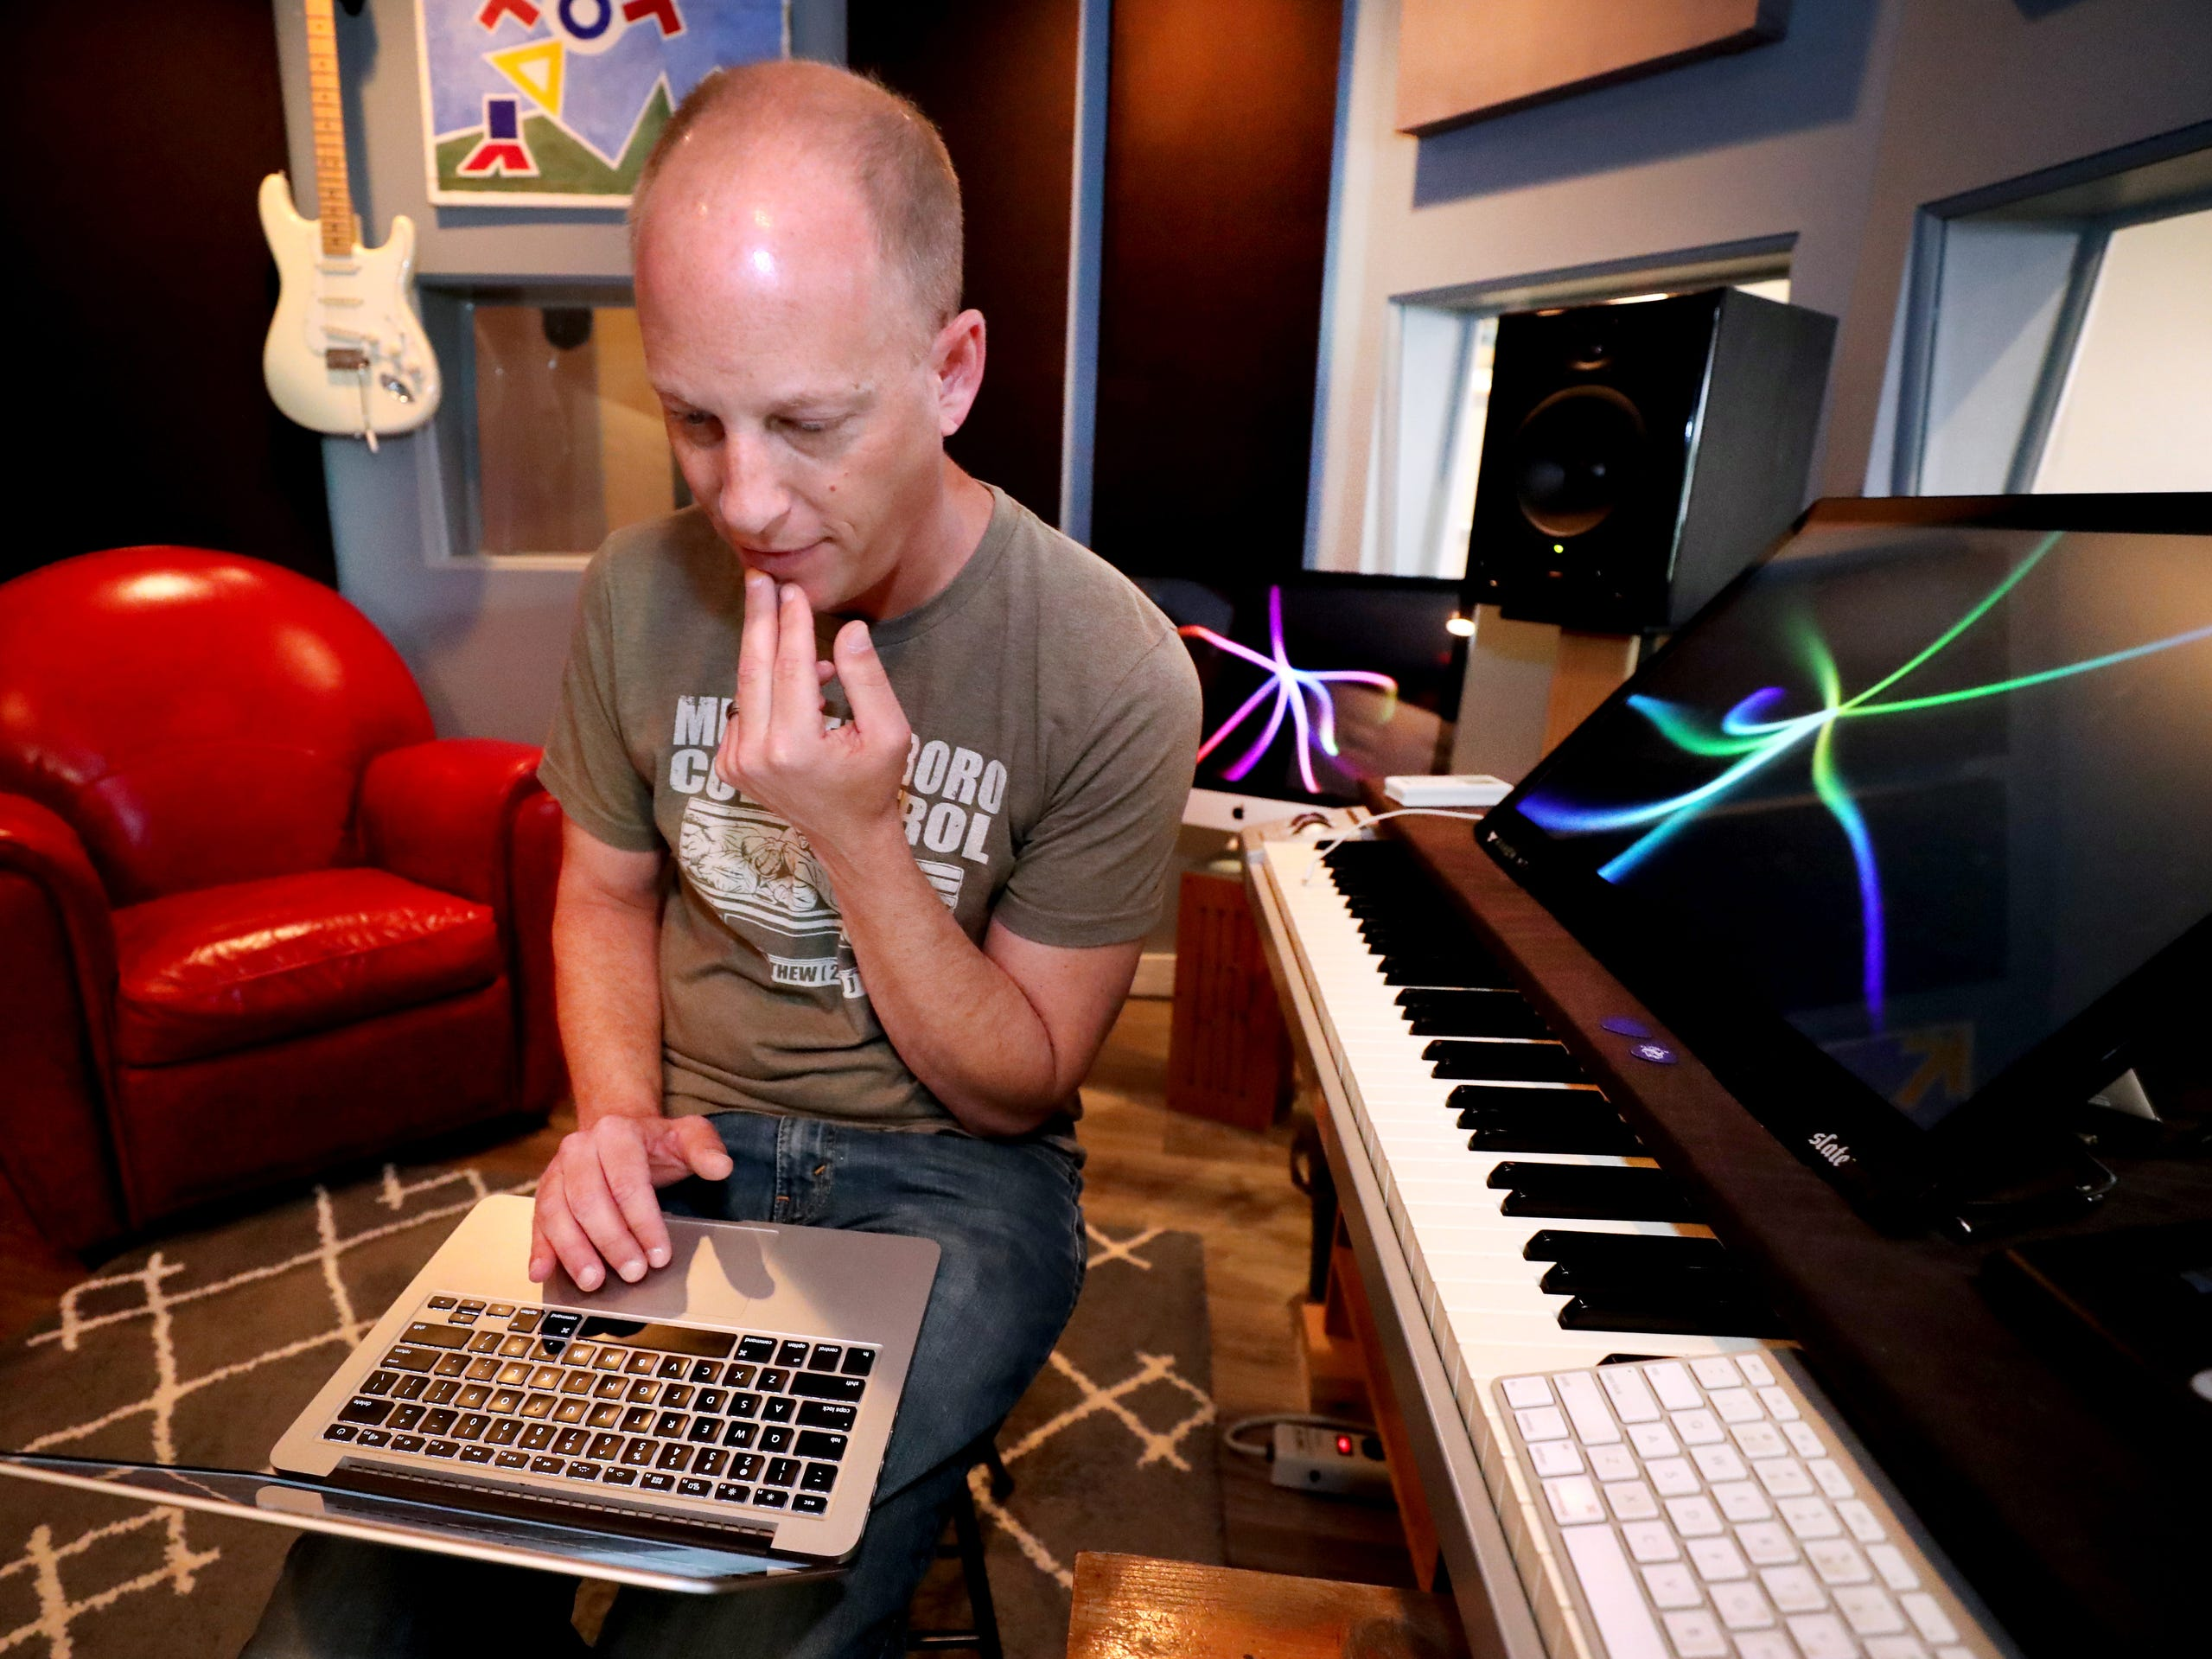 Andy Harper pulls up some of the projects that he has worked on in the past in his studio Limitedwave Recordings on Wednesday April 10, 2019.